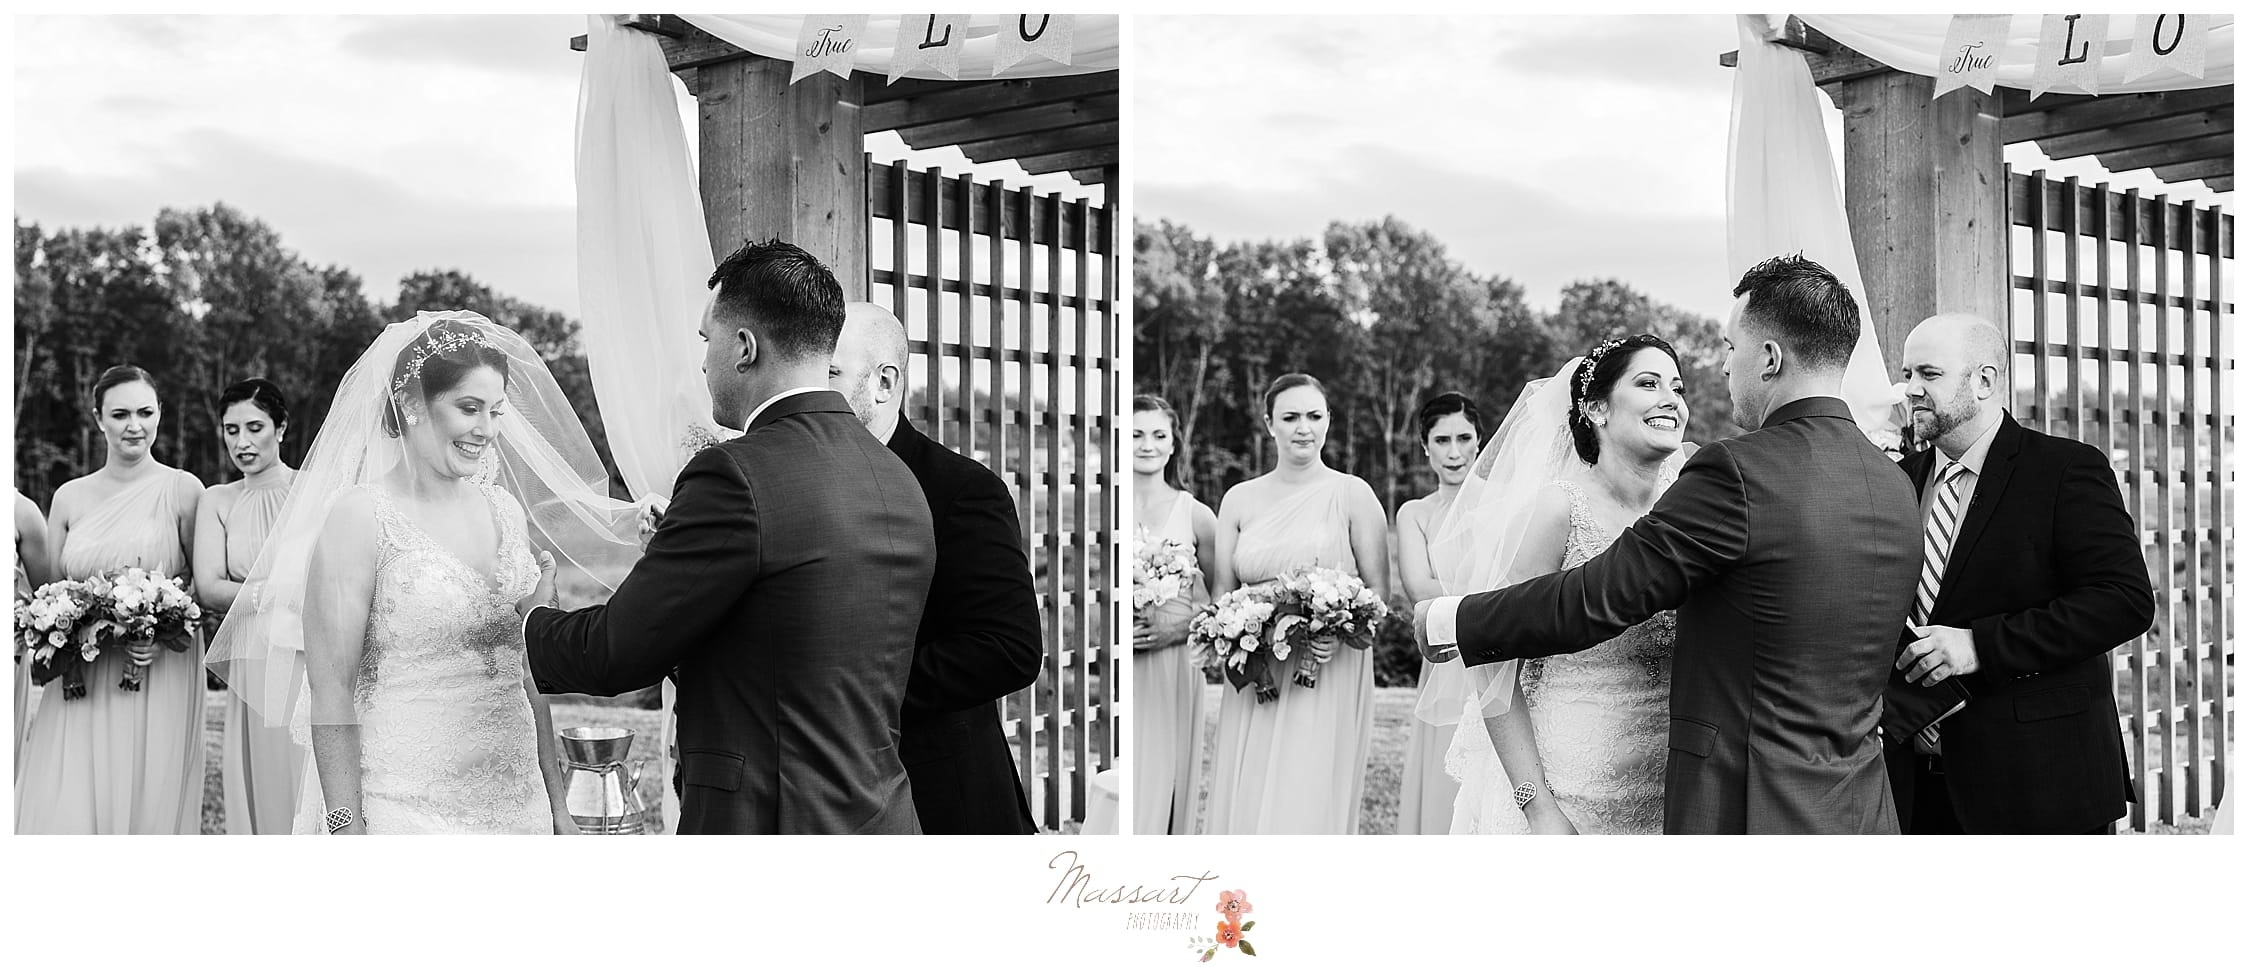 Outdoor summer wedding ceremony at Harbor Lights in RI photographed by CT, MA, RI wedding photographers Massart Photography.